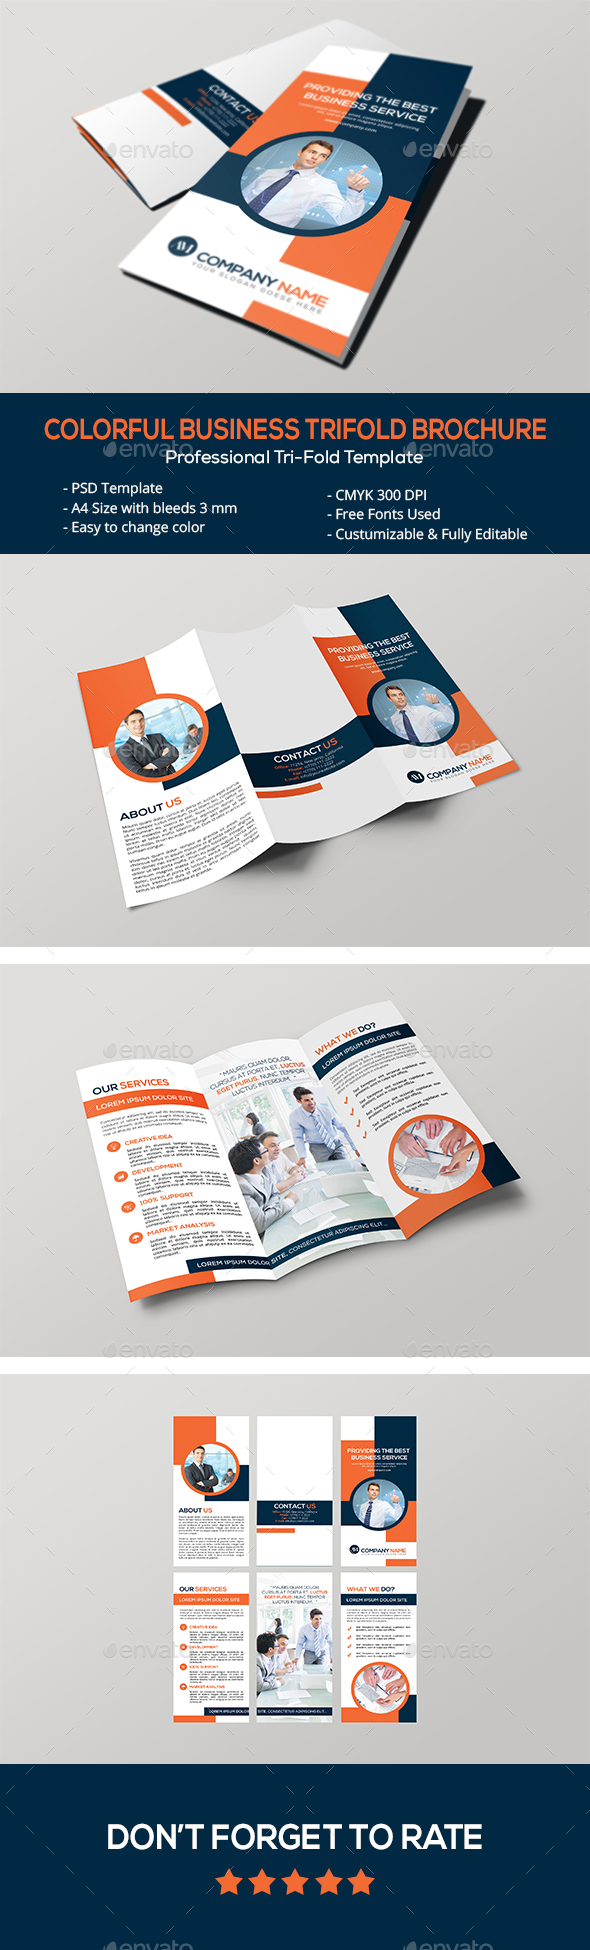 Colorful Business Trifold Brochure - Corporate Brochures